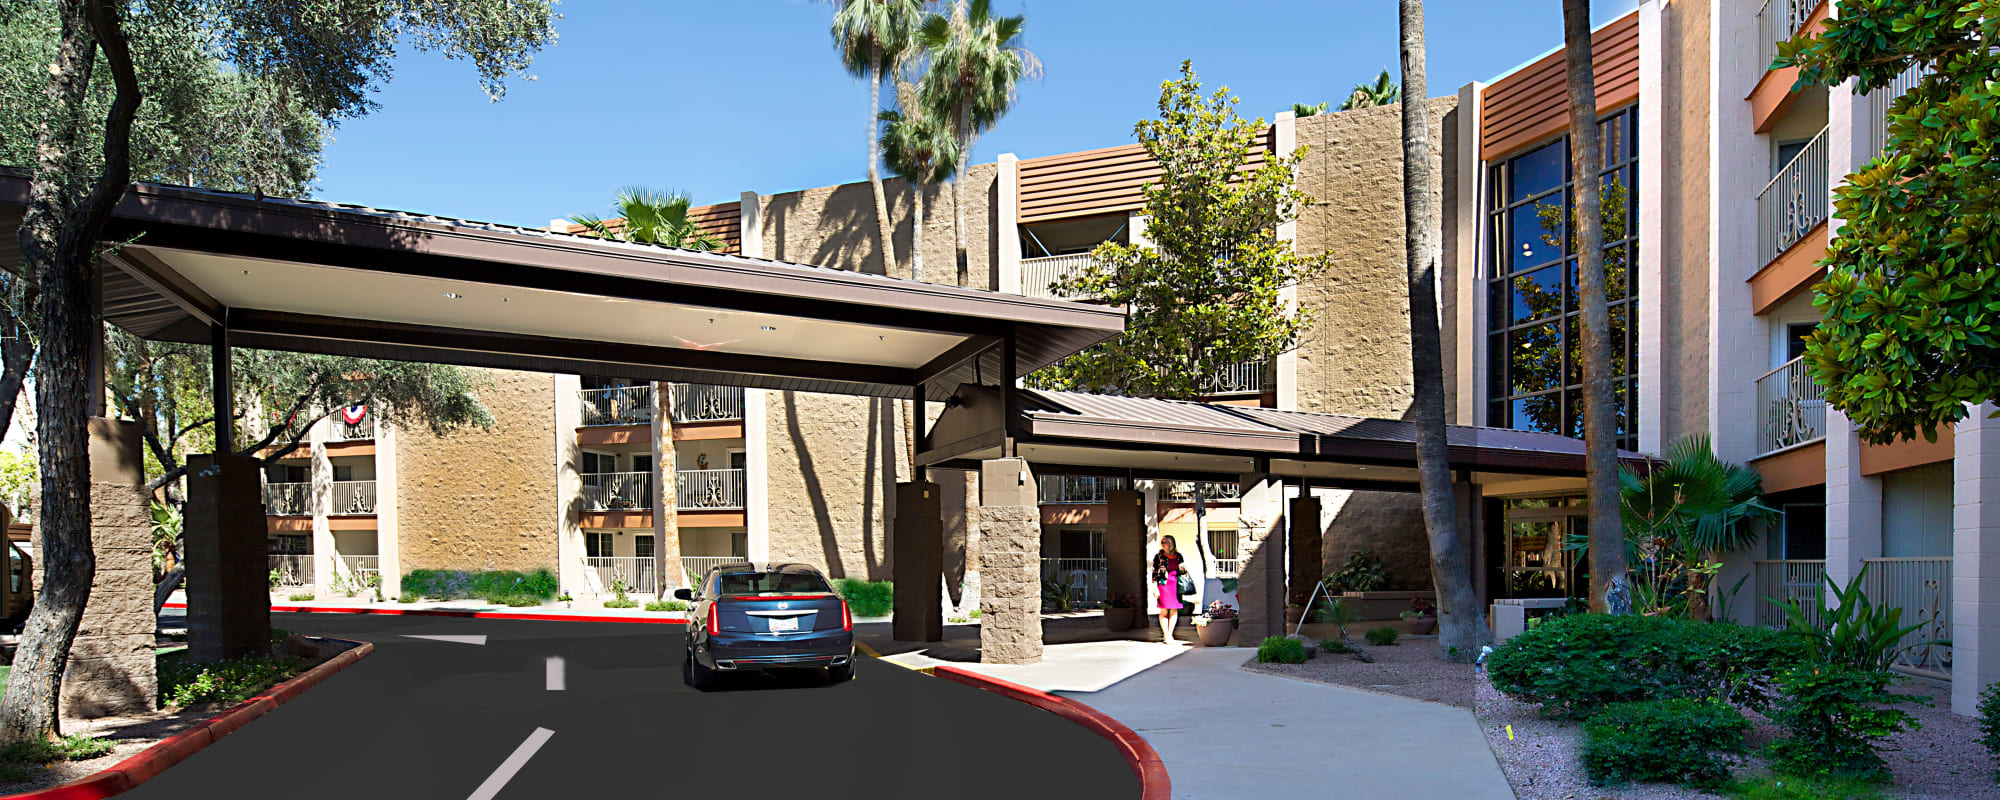 Exterior rendering of Bella Vista Senior Living in Mesa, Arizona